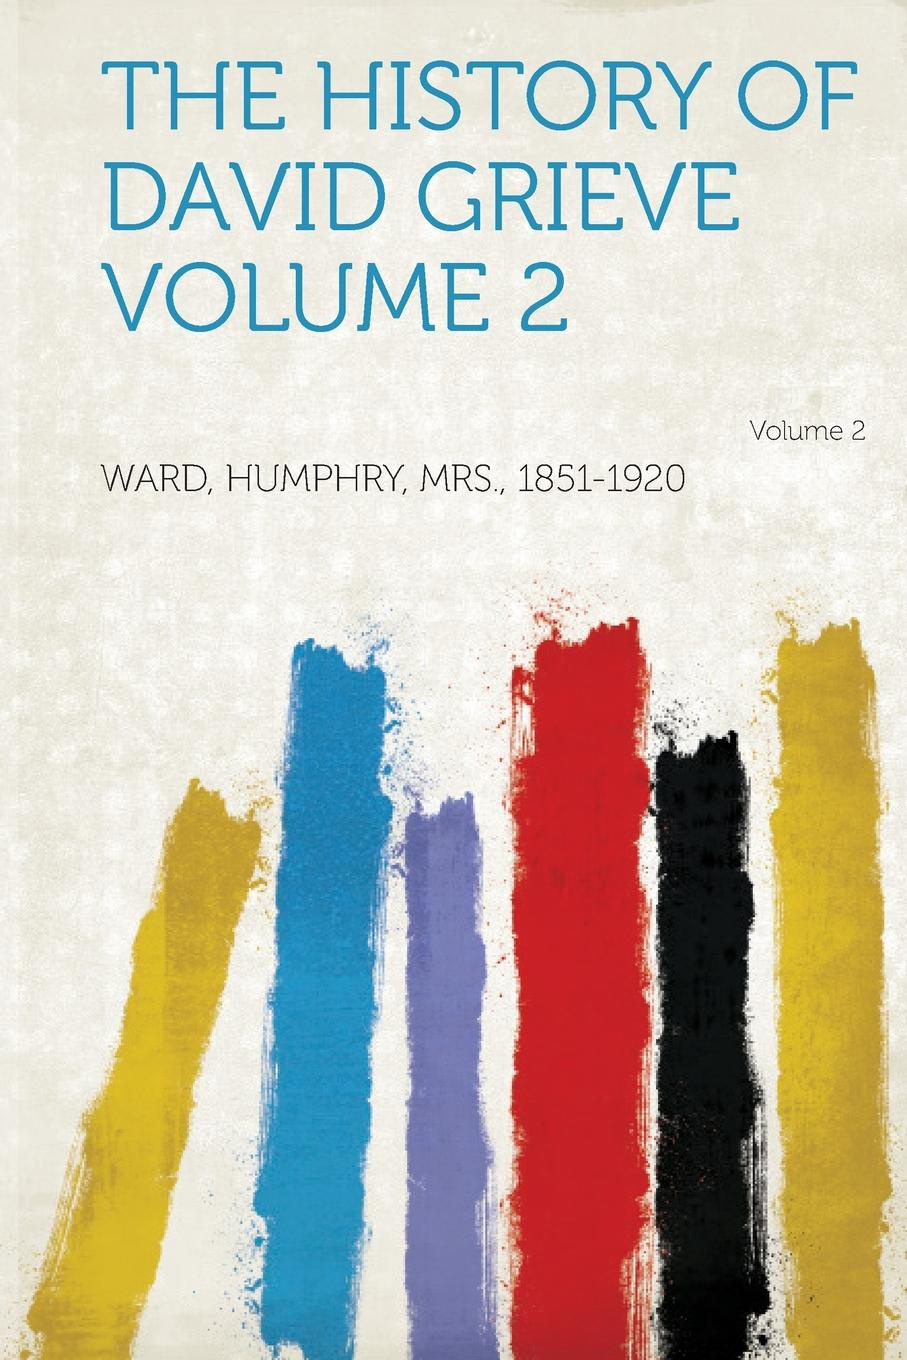 Ward Humphry Mrs. 1851-1920 The History of David Grieve Volume 2